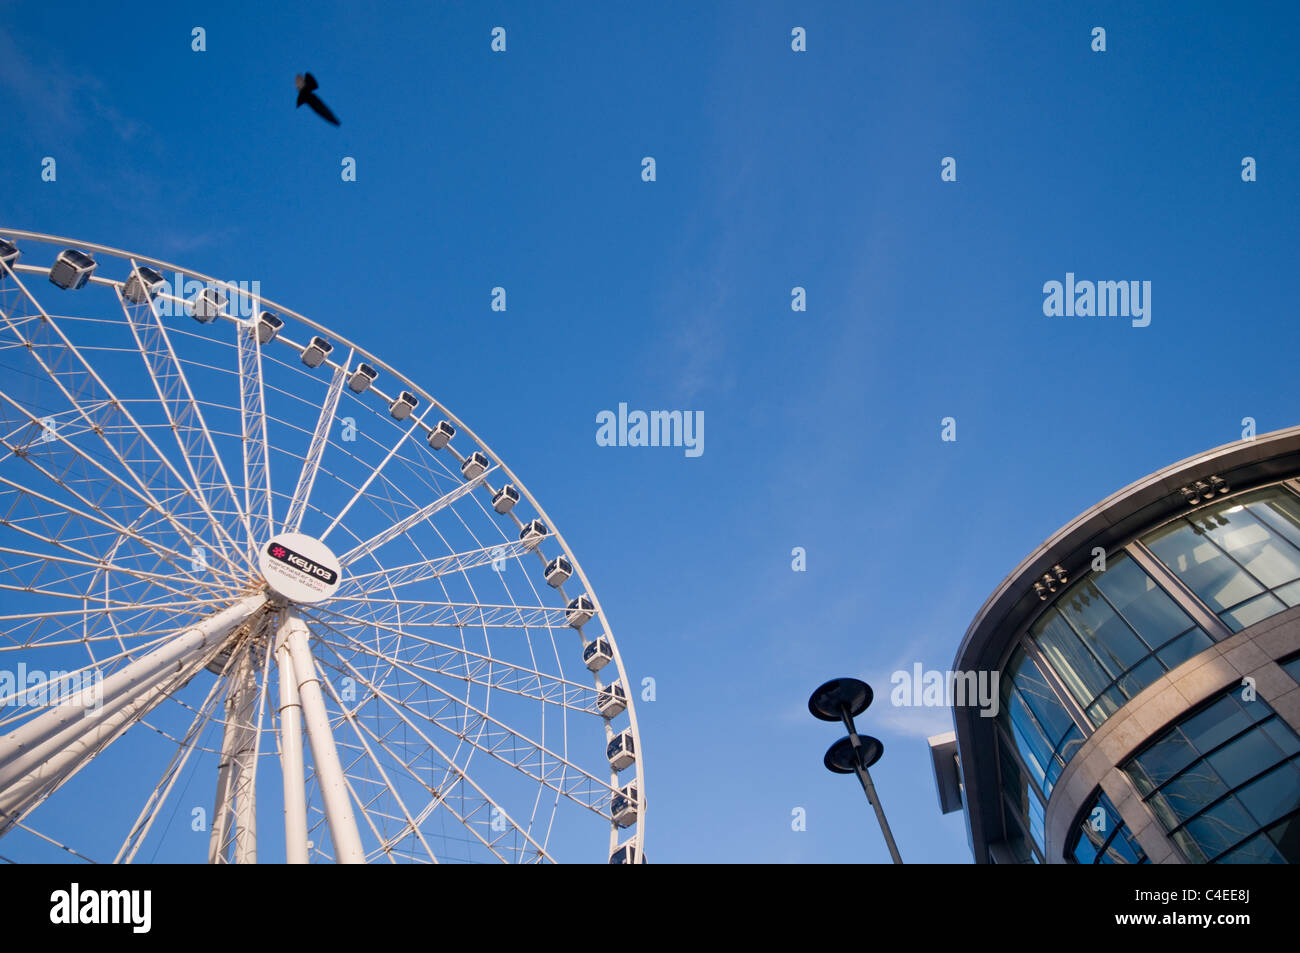 The Manchester Wheel tourist attraction in Exchange Square, Manchester city center, England - Stock Image